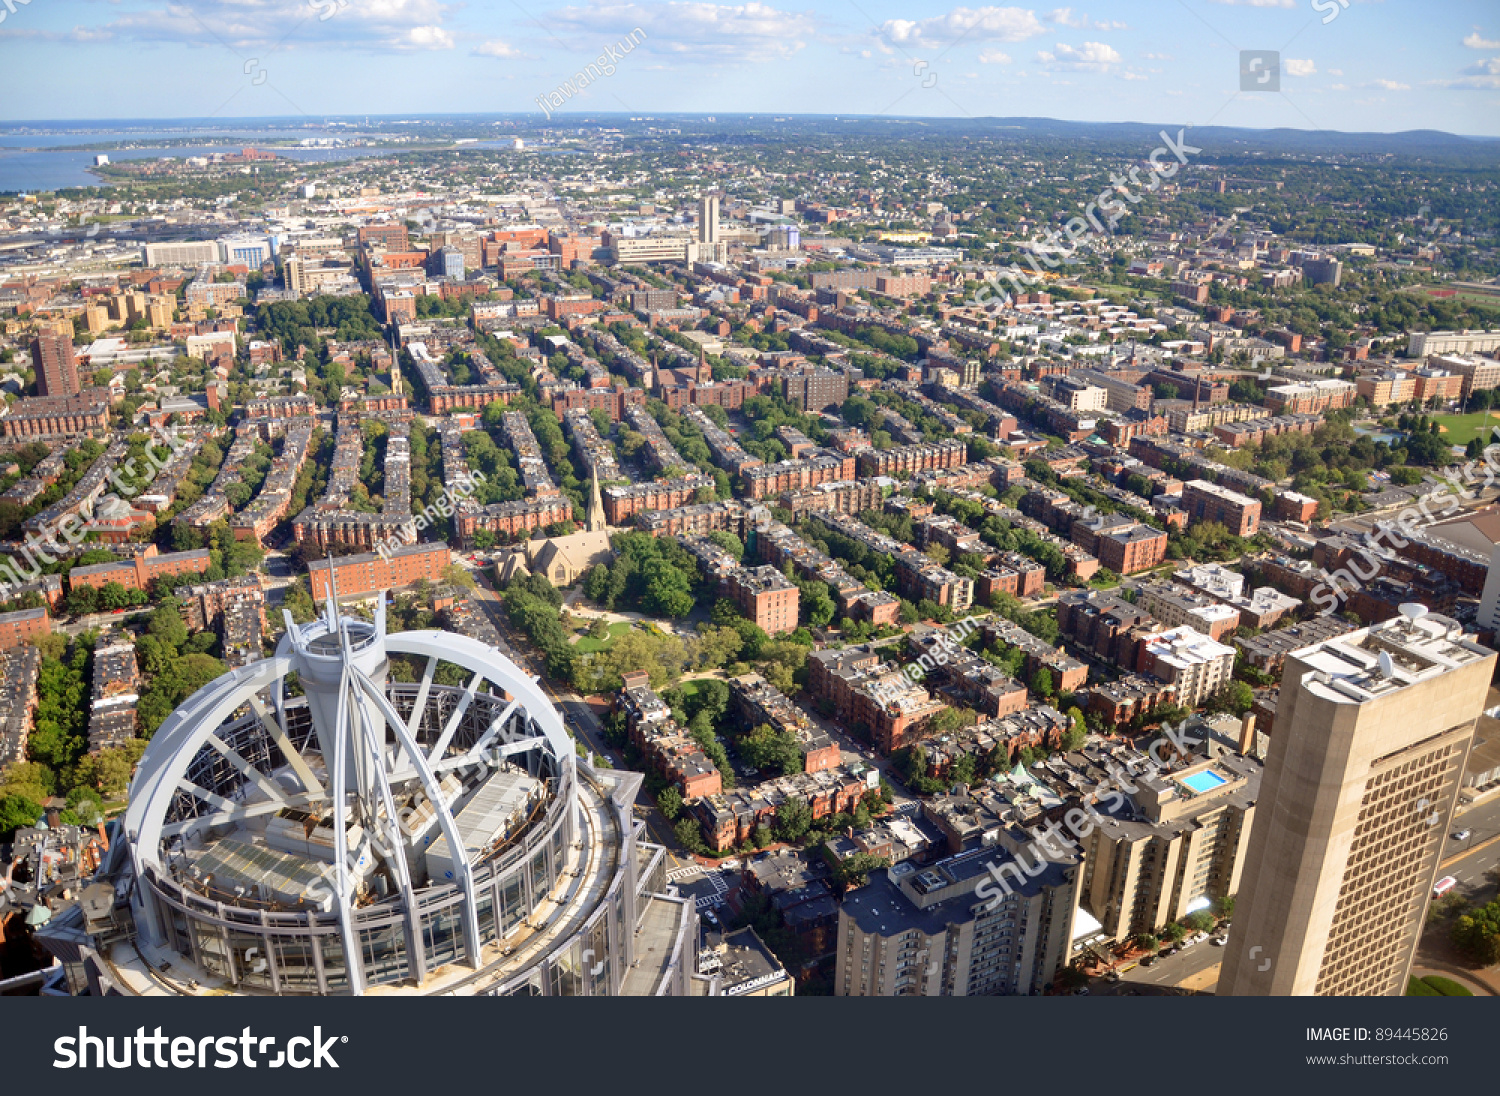 Back Bay Apartment Aerial View Boston Stock Photo - Prudential center boston apartments